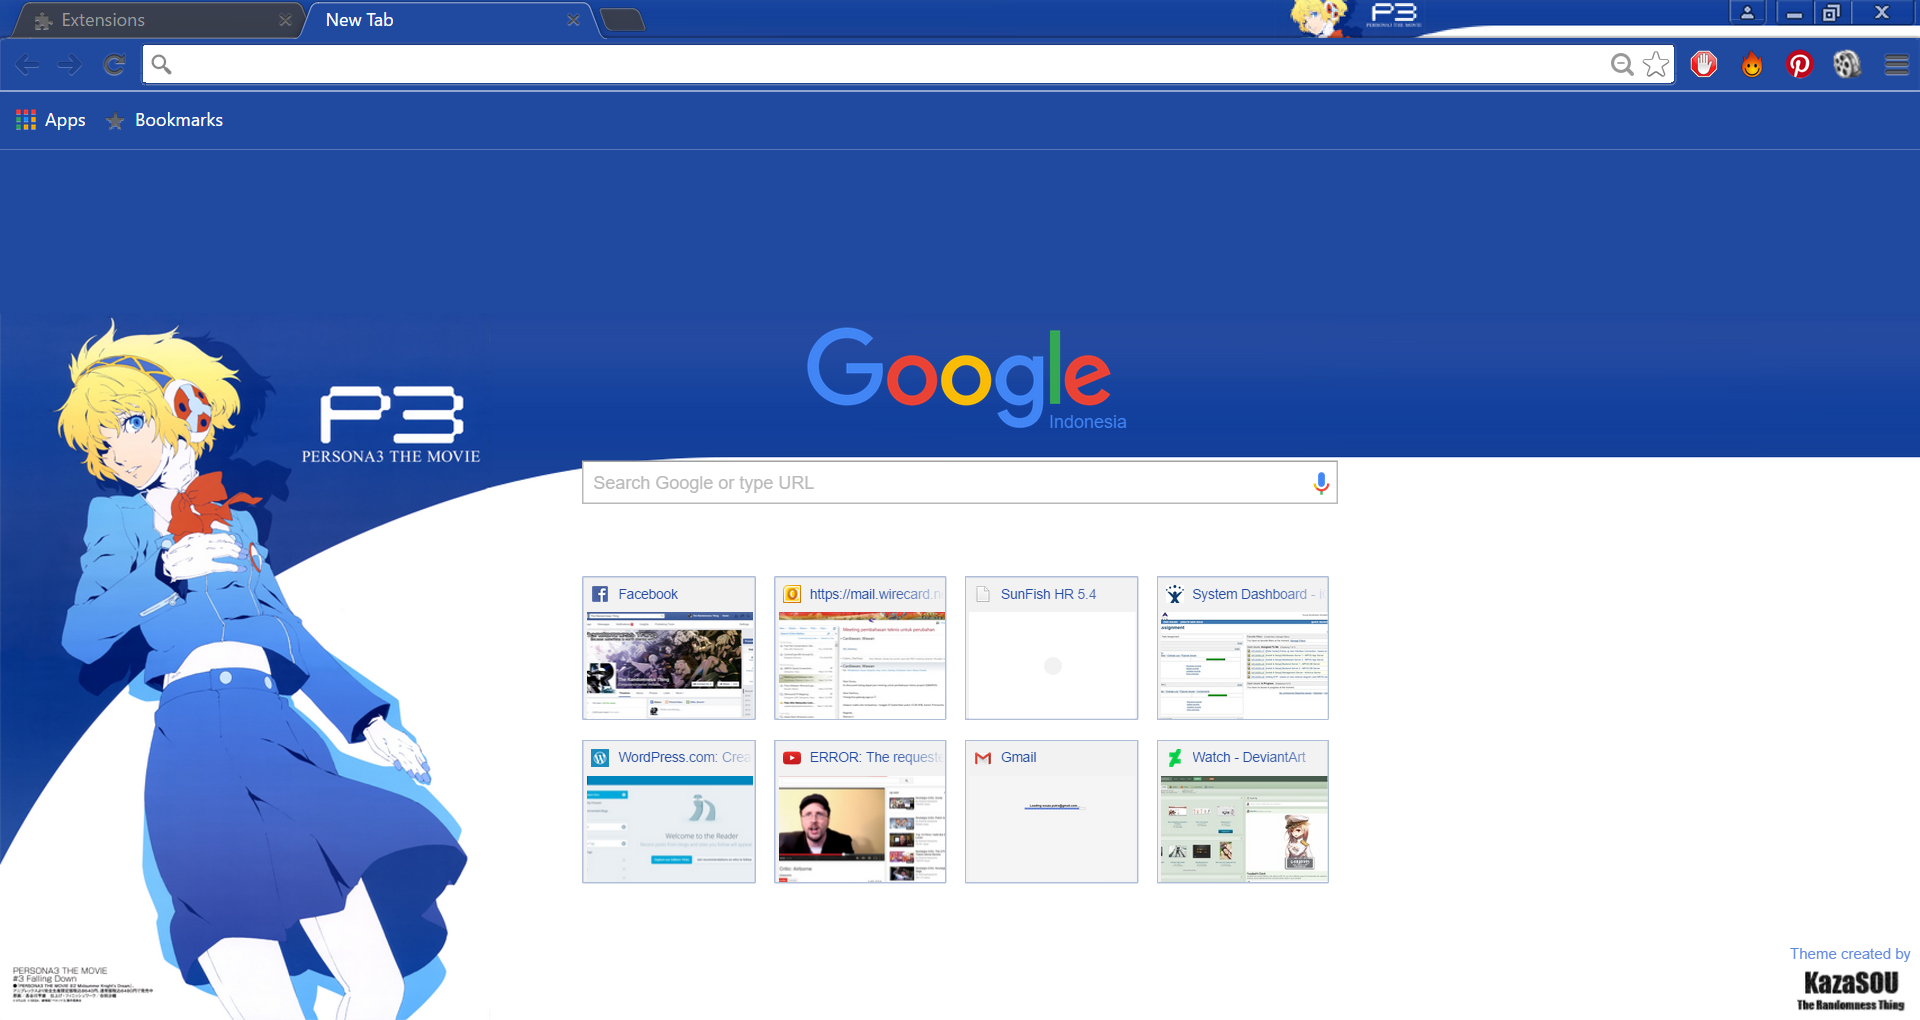 Here's a nice simple blue colored Google Chrome theme